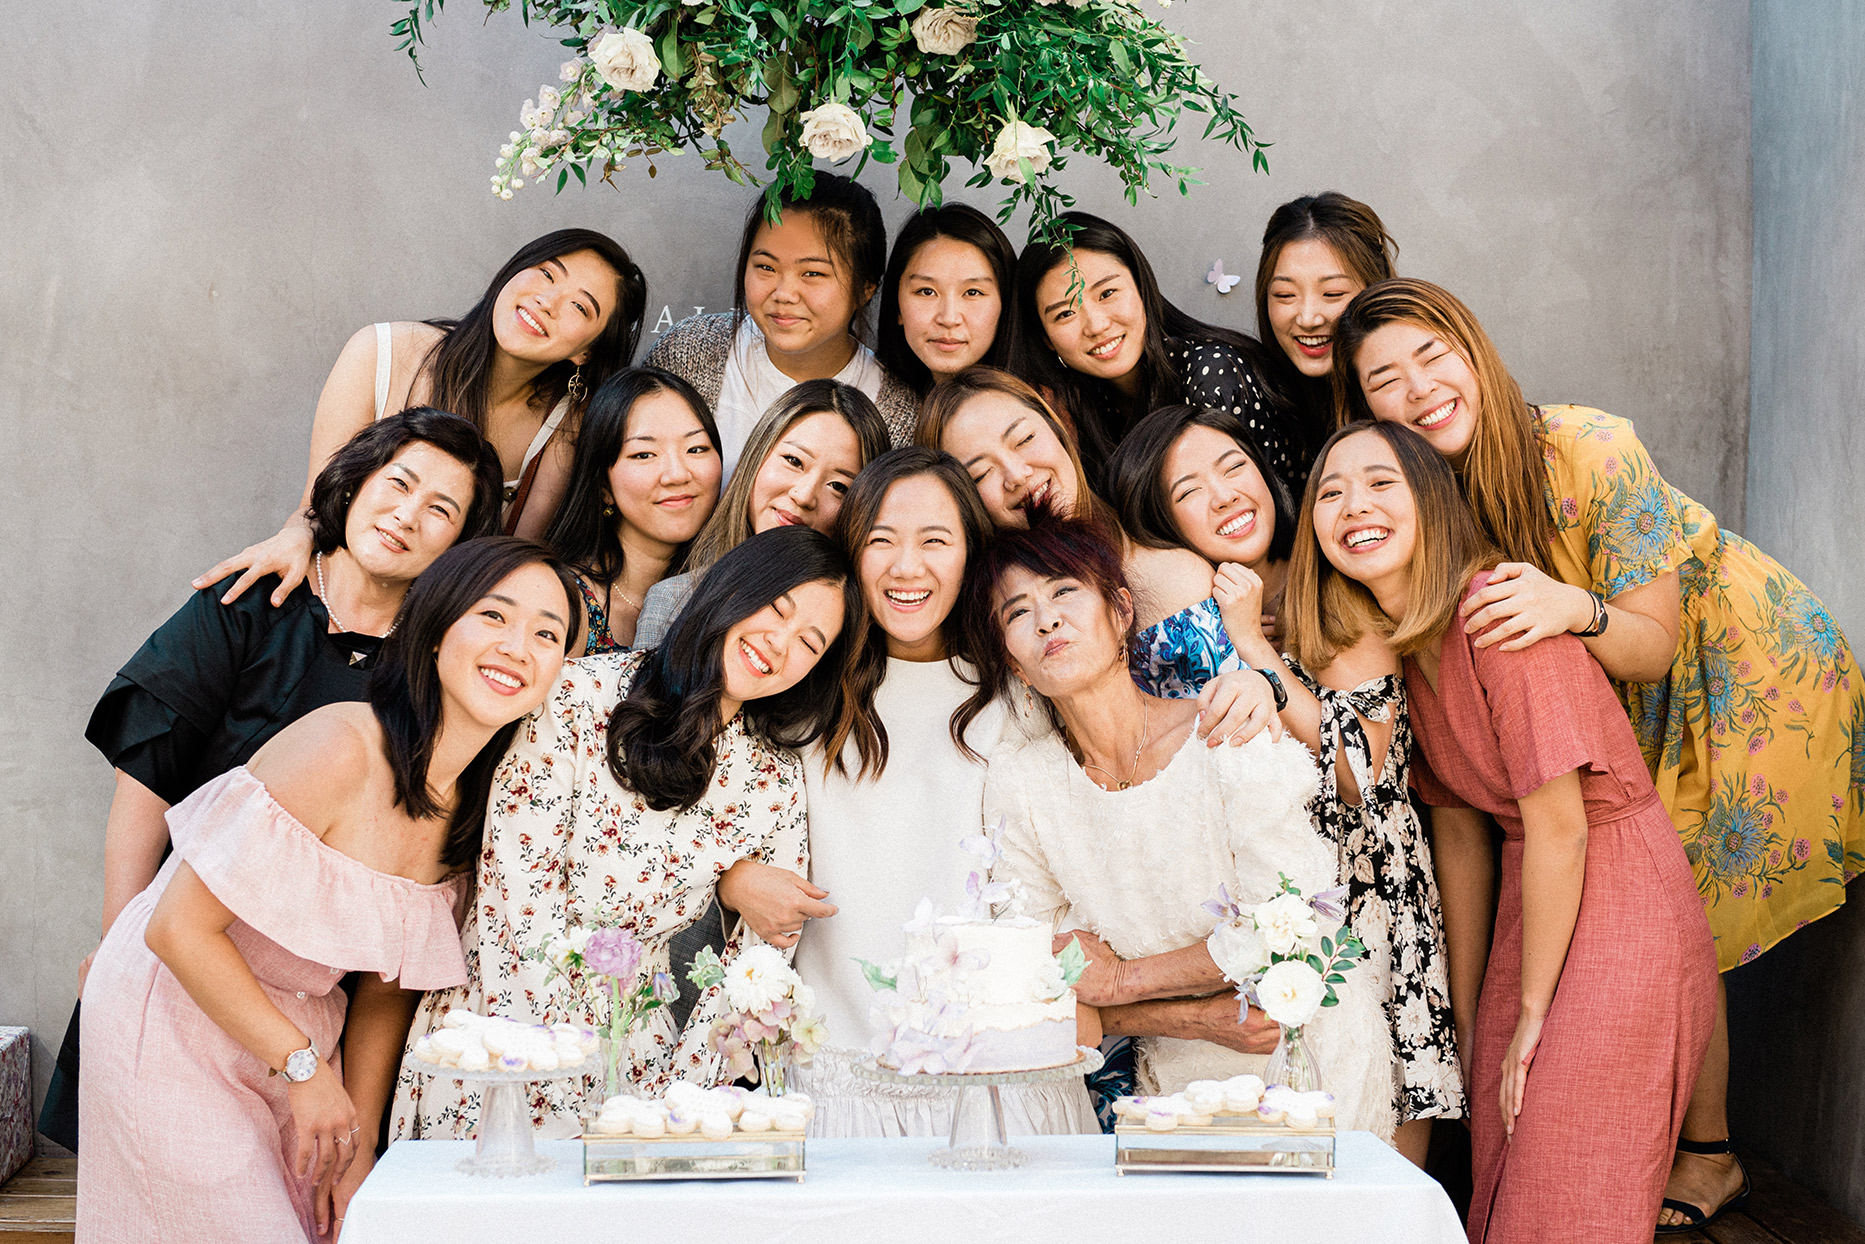 sally bridal shower group photo in front of desserts